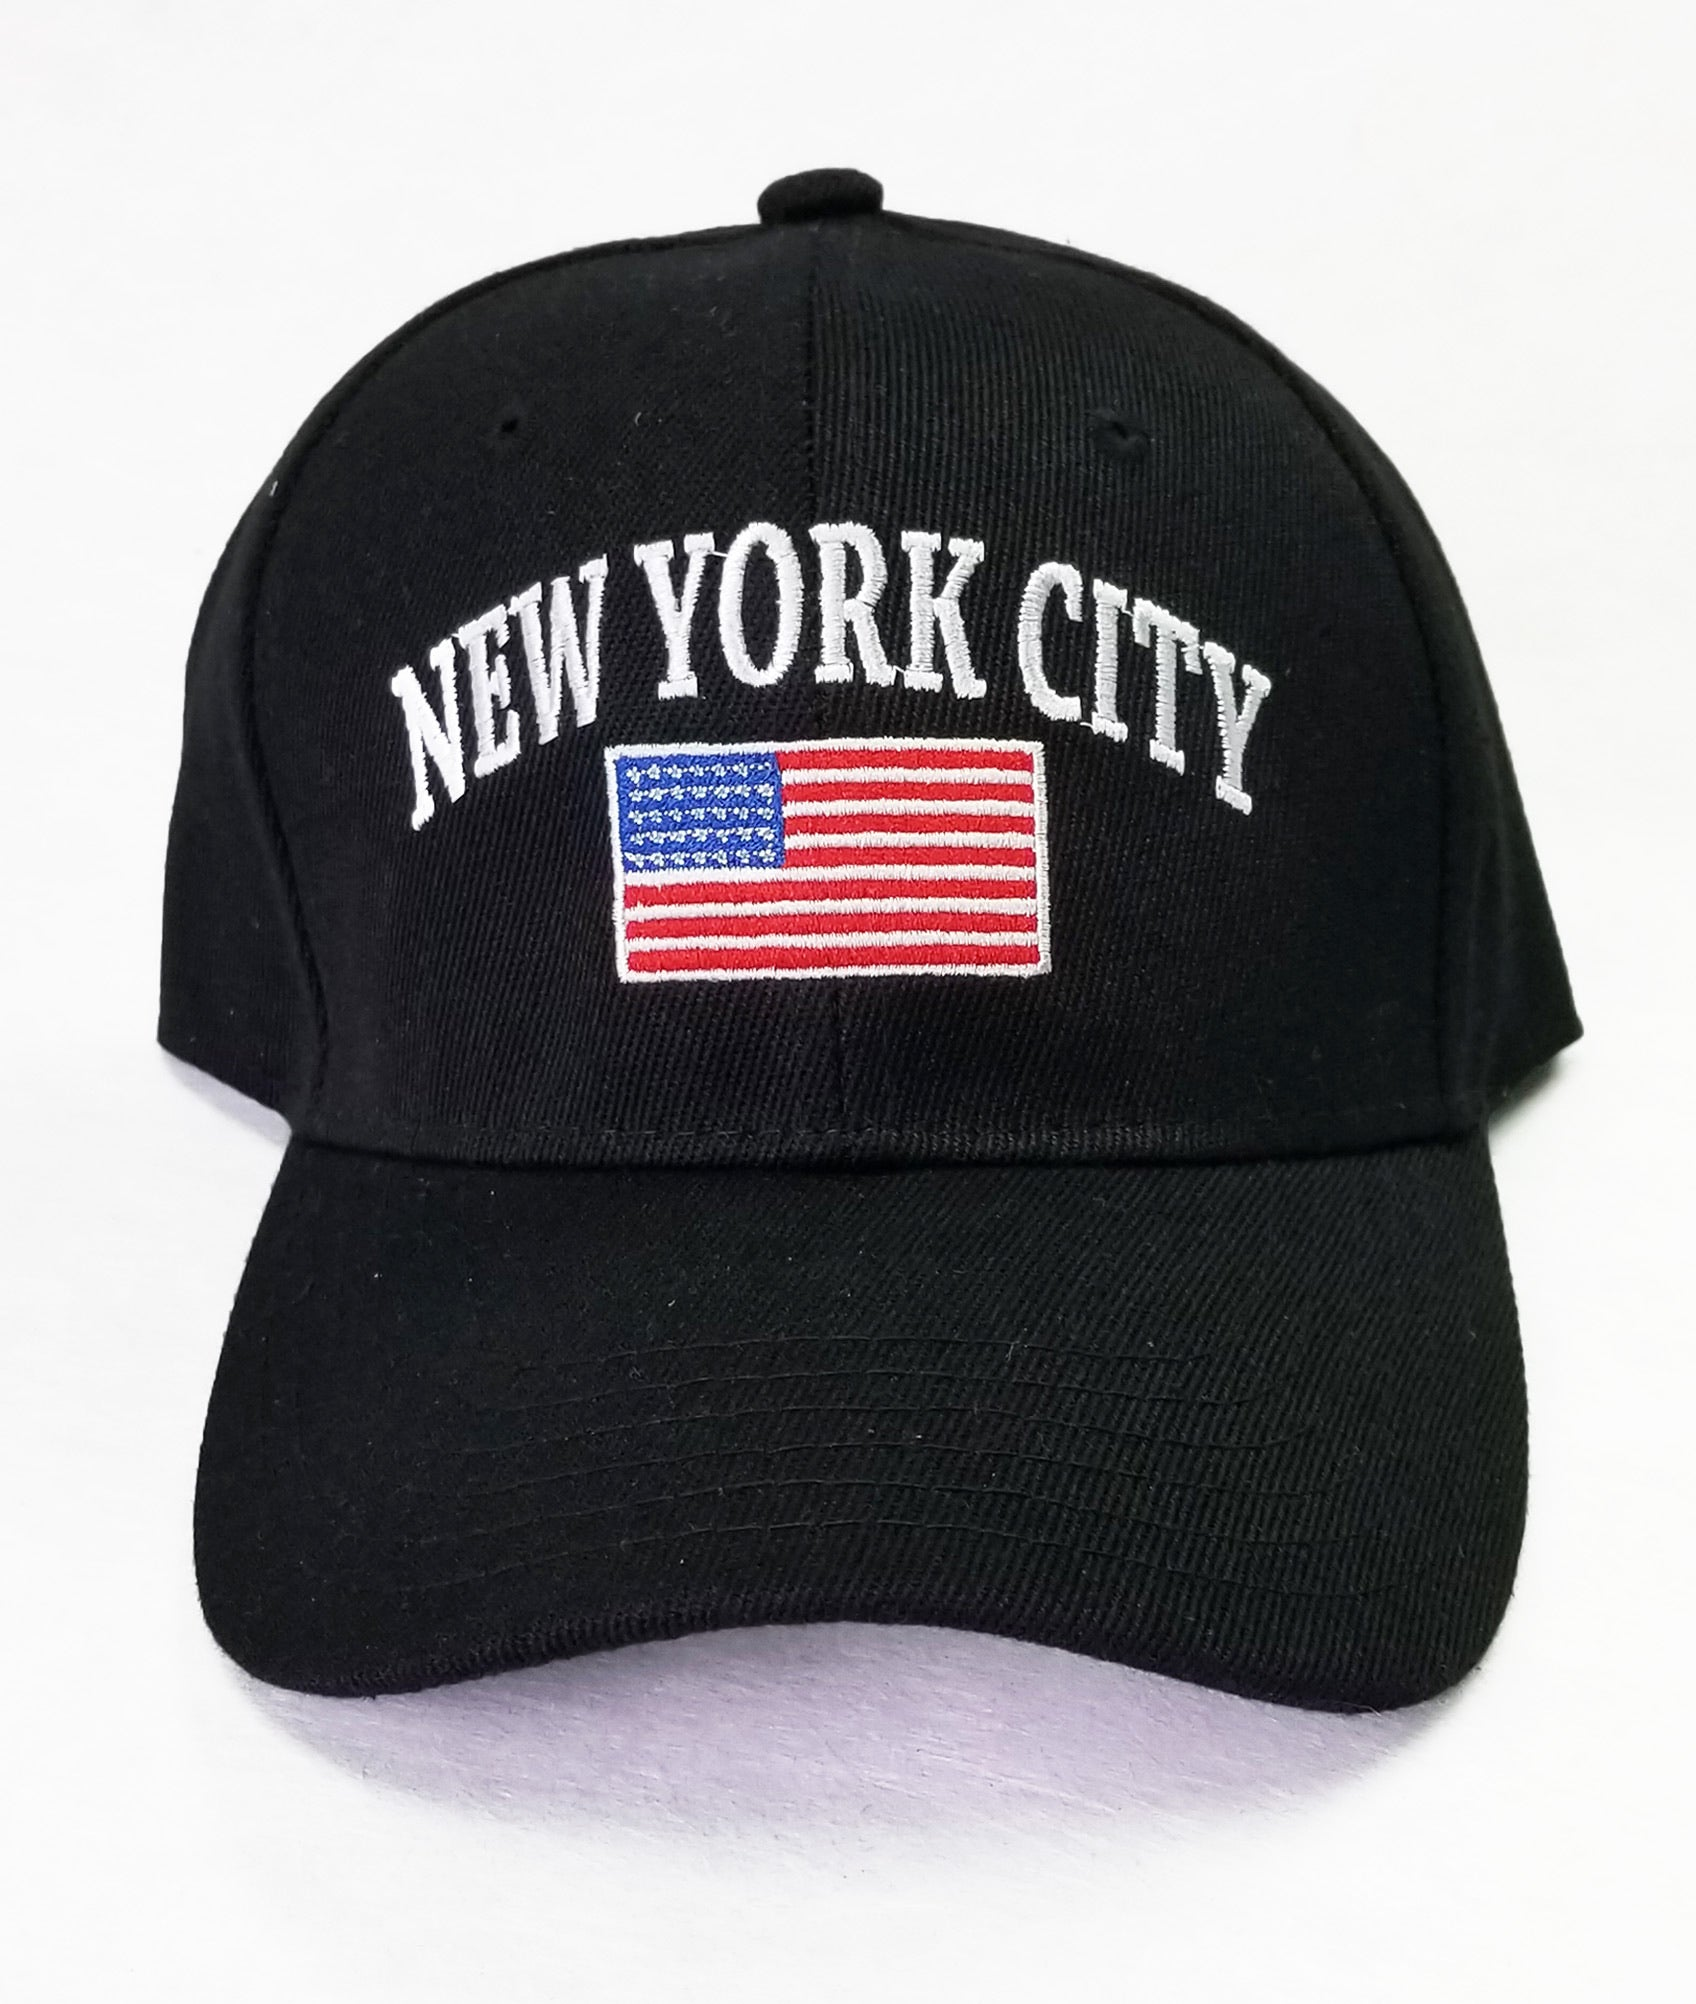 NYC Embroidered Baseball Hat With Flag